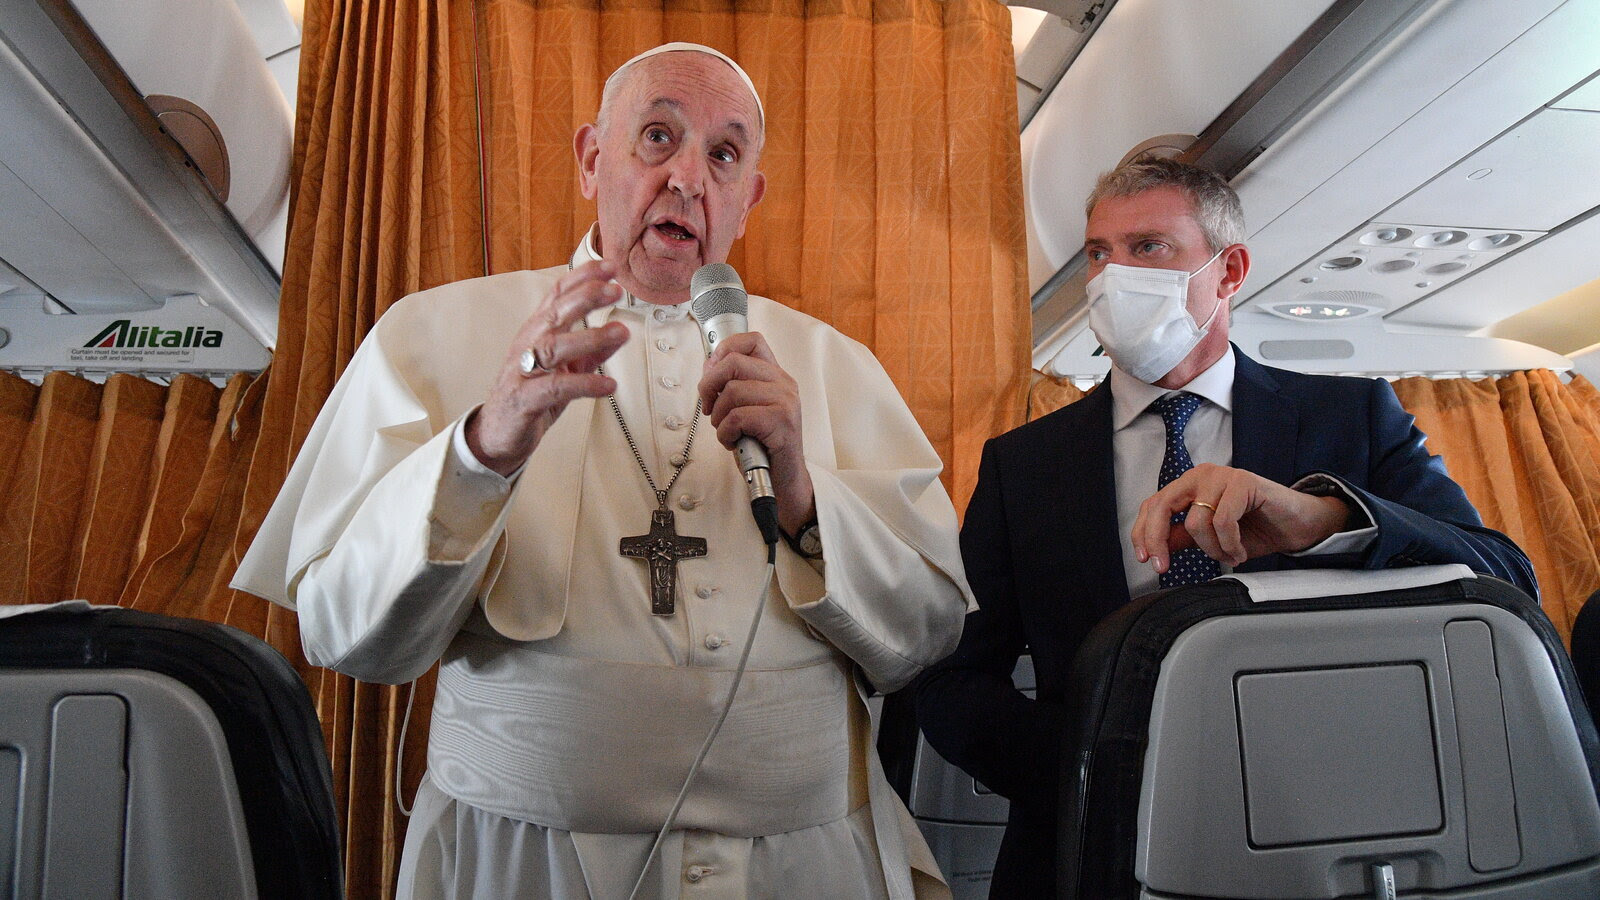 Pope Francis Weighs In on Calls to Deny Communion to Biden Over Abortion